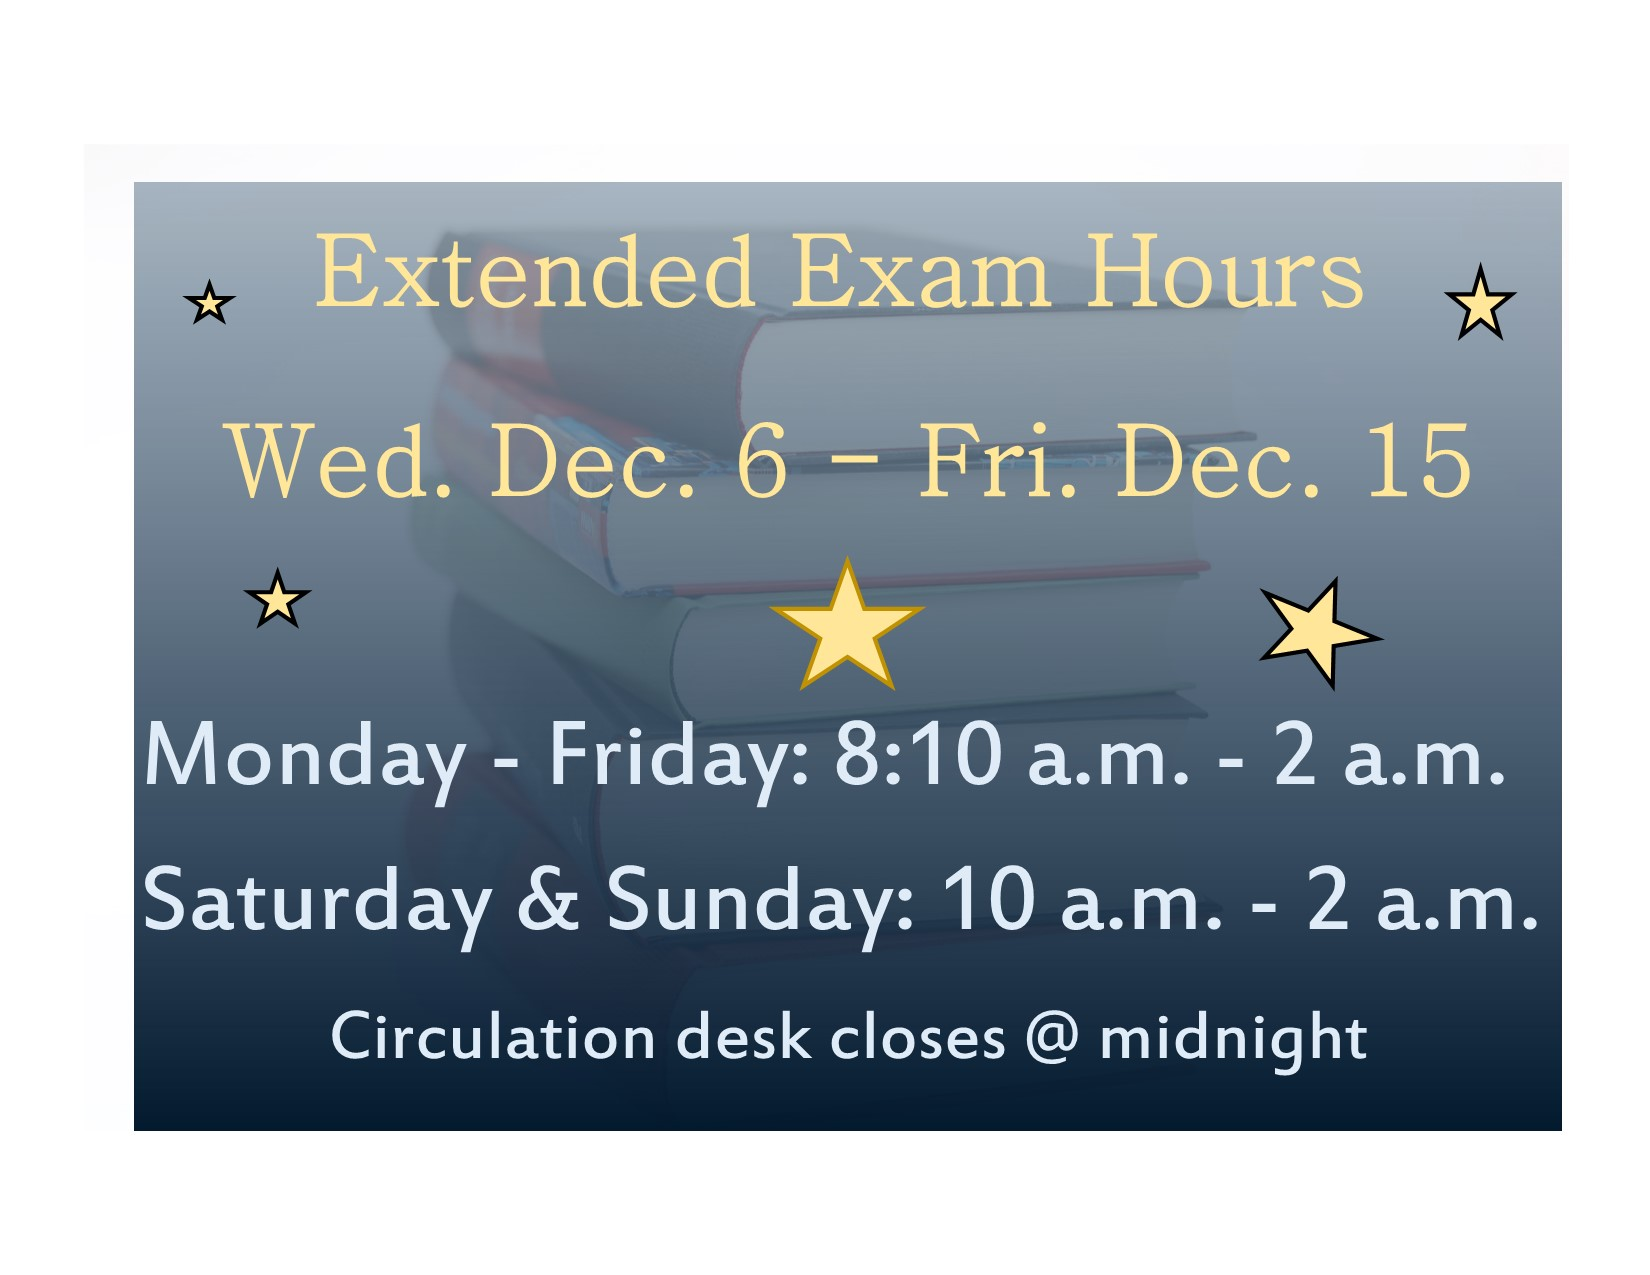 Extended exam hours begin Dec. 6